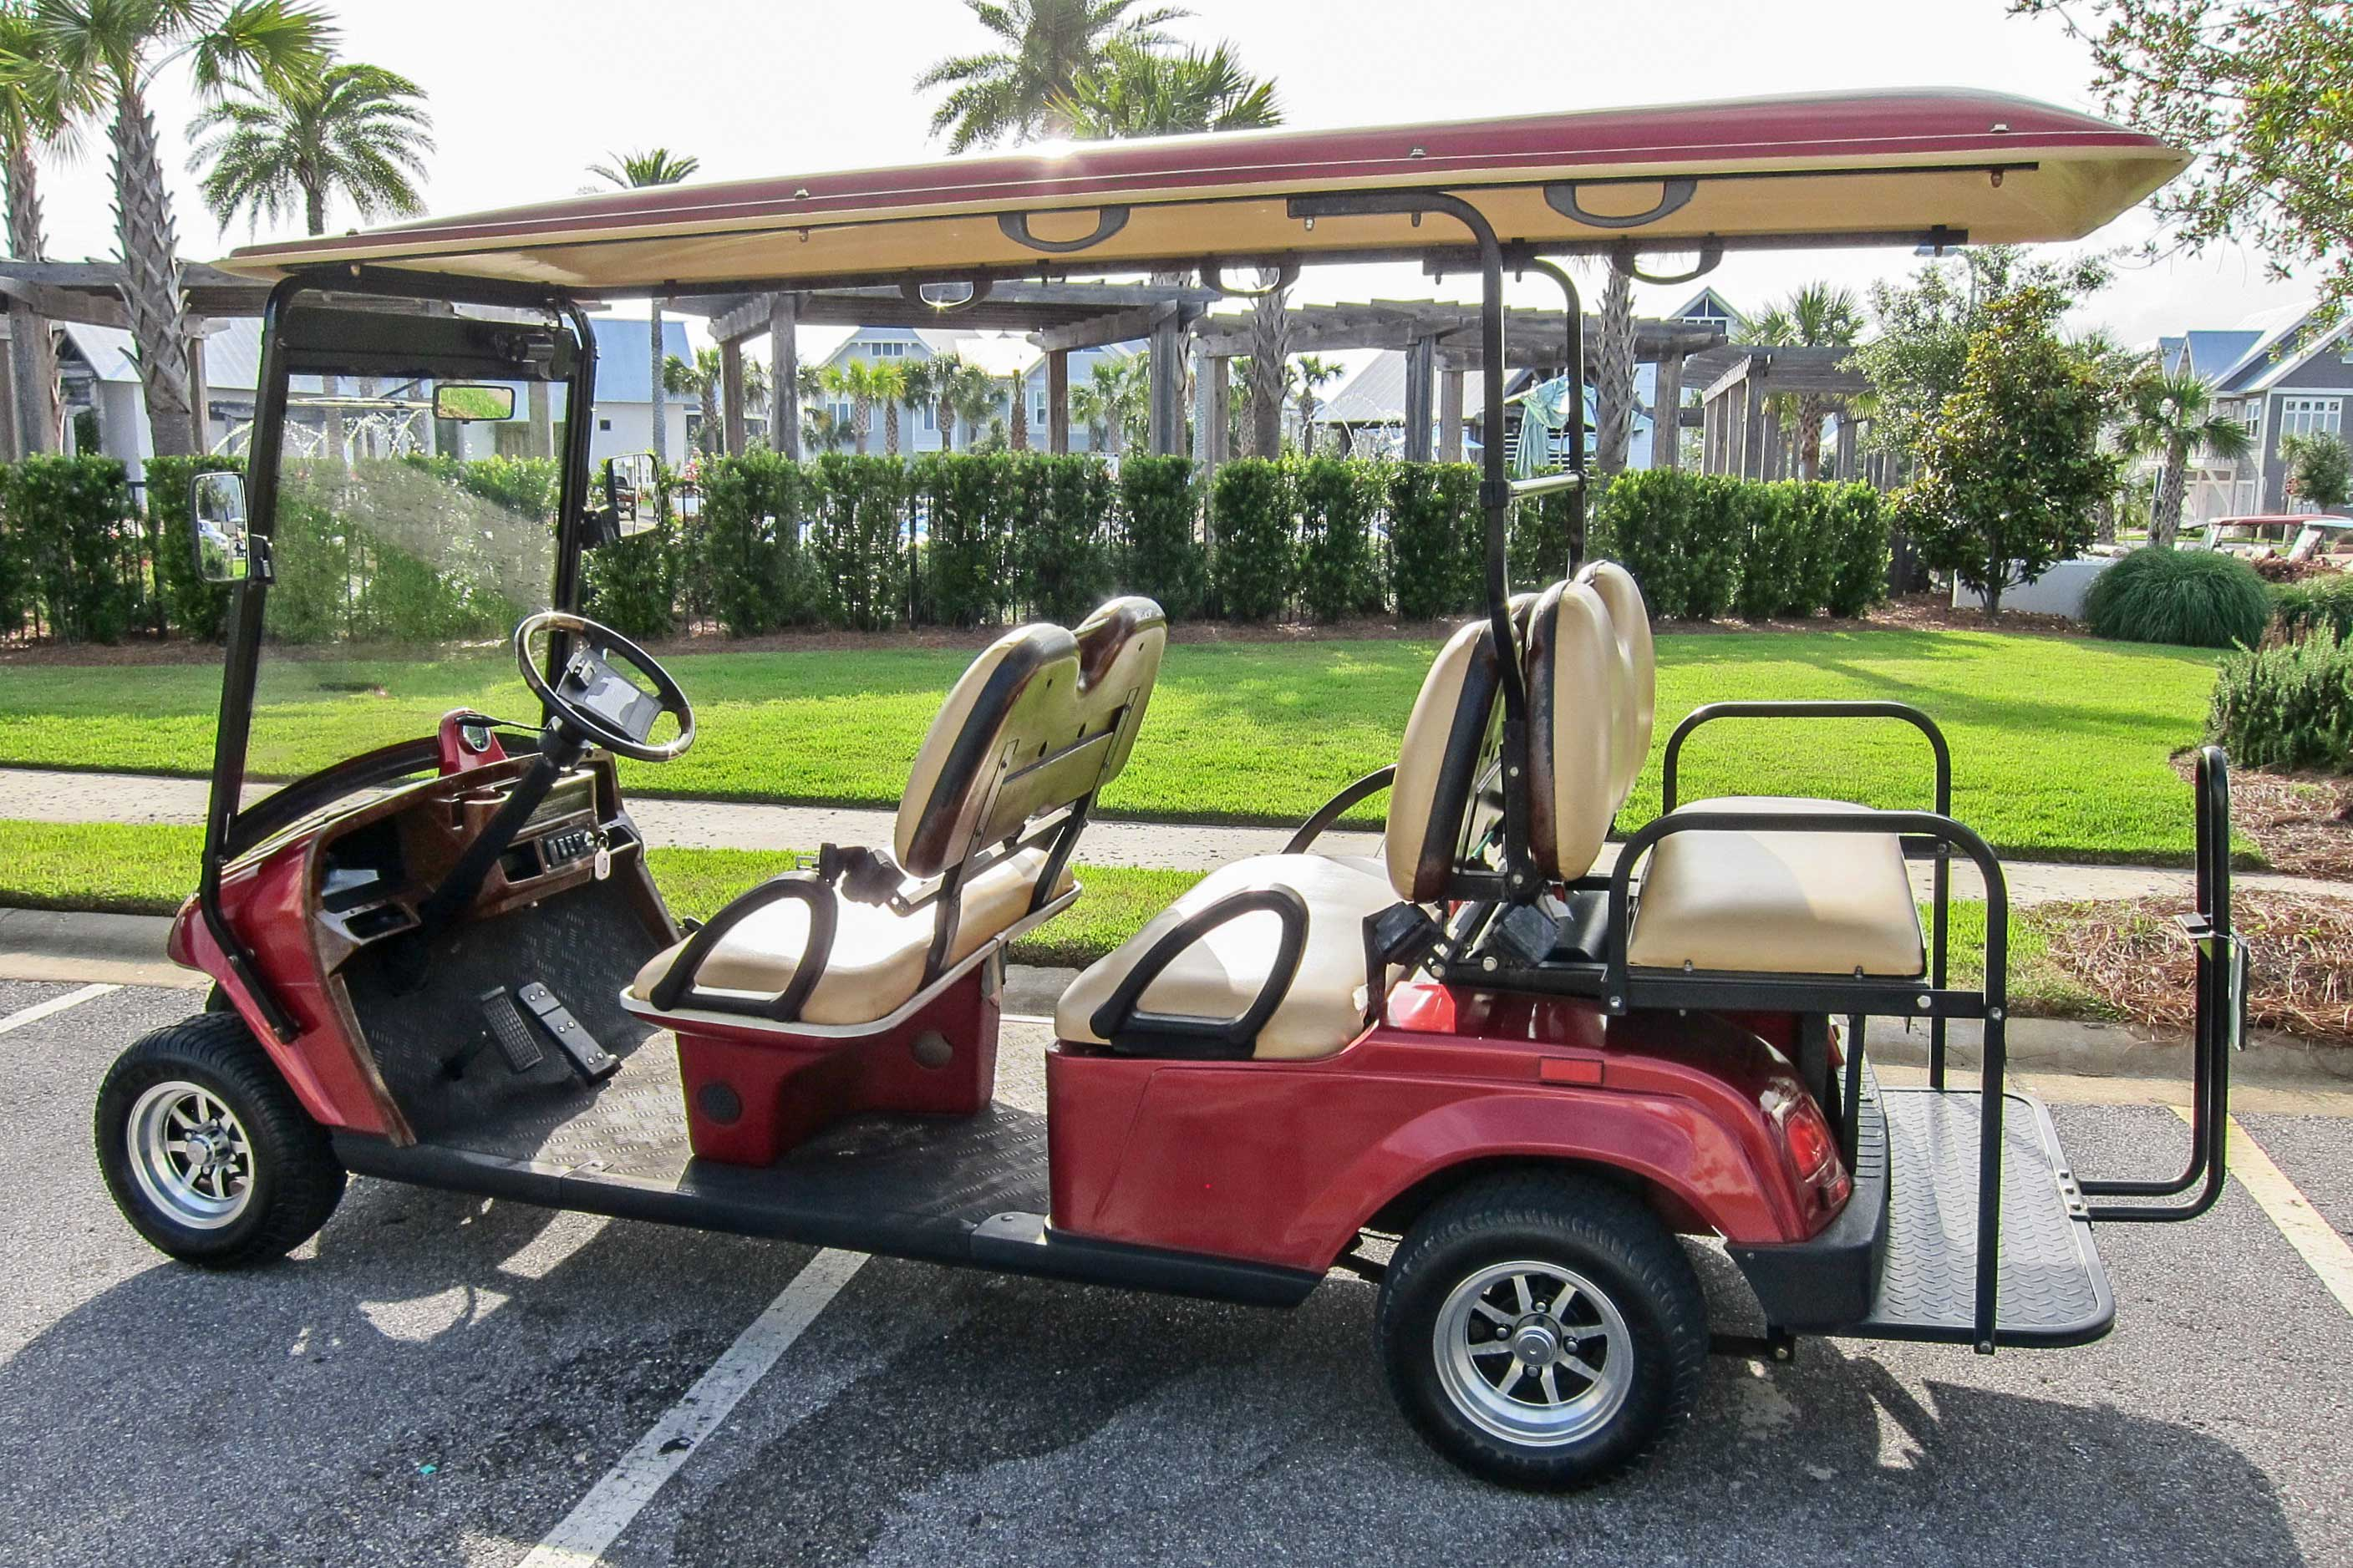 Guests over the age of 25 will be able to drive the golf cart!